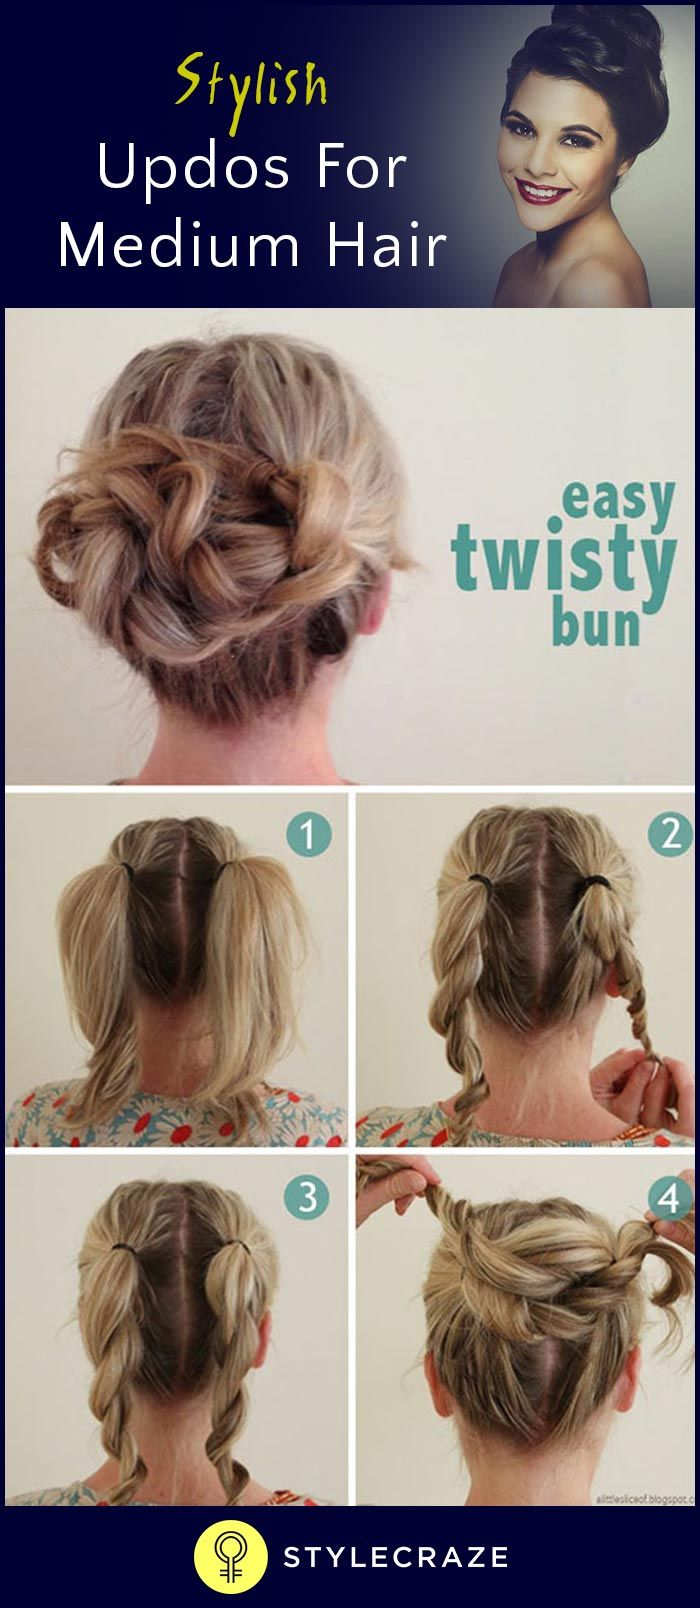 How to choose find the right hairstyles and eyeglasses for your face shape How to choose find the right hairstyles and eyeglasses for your face shape new photo